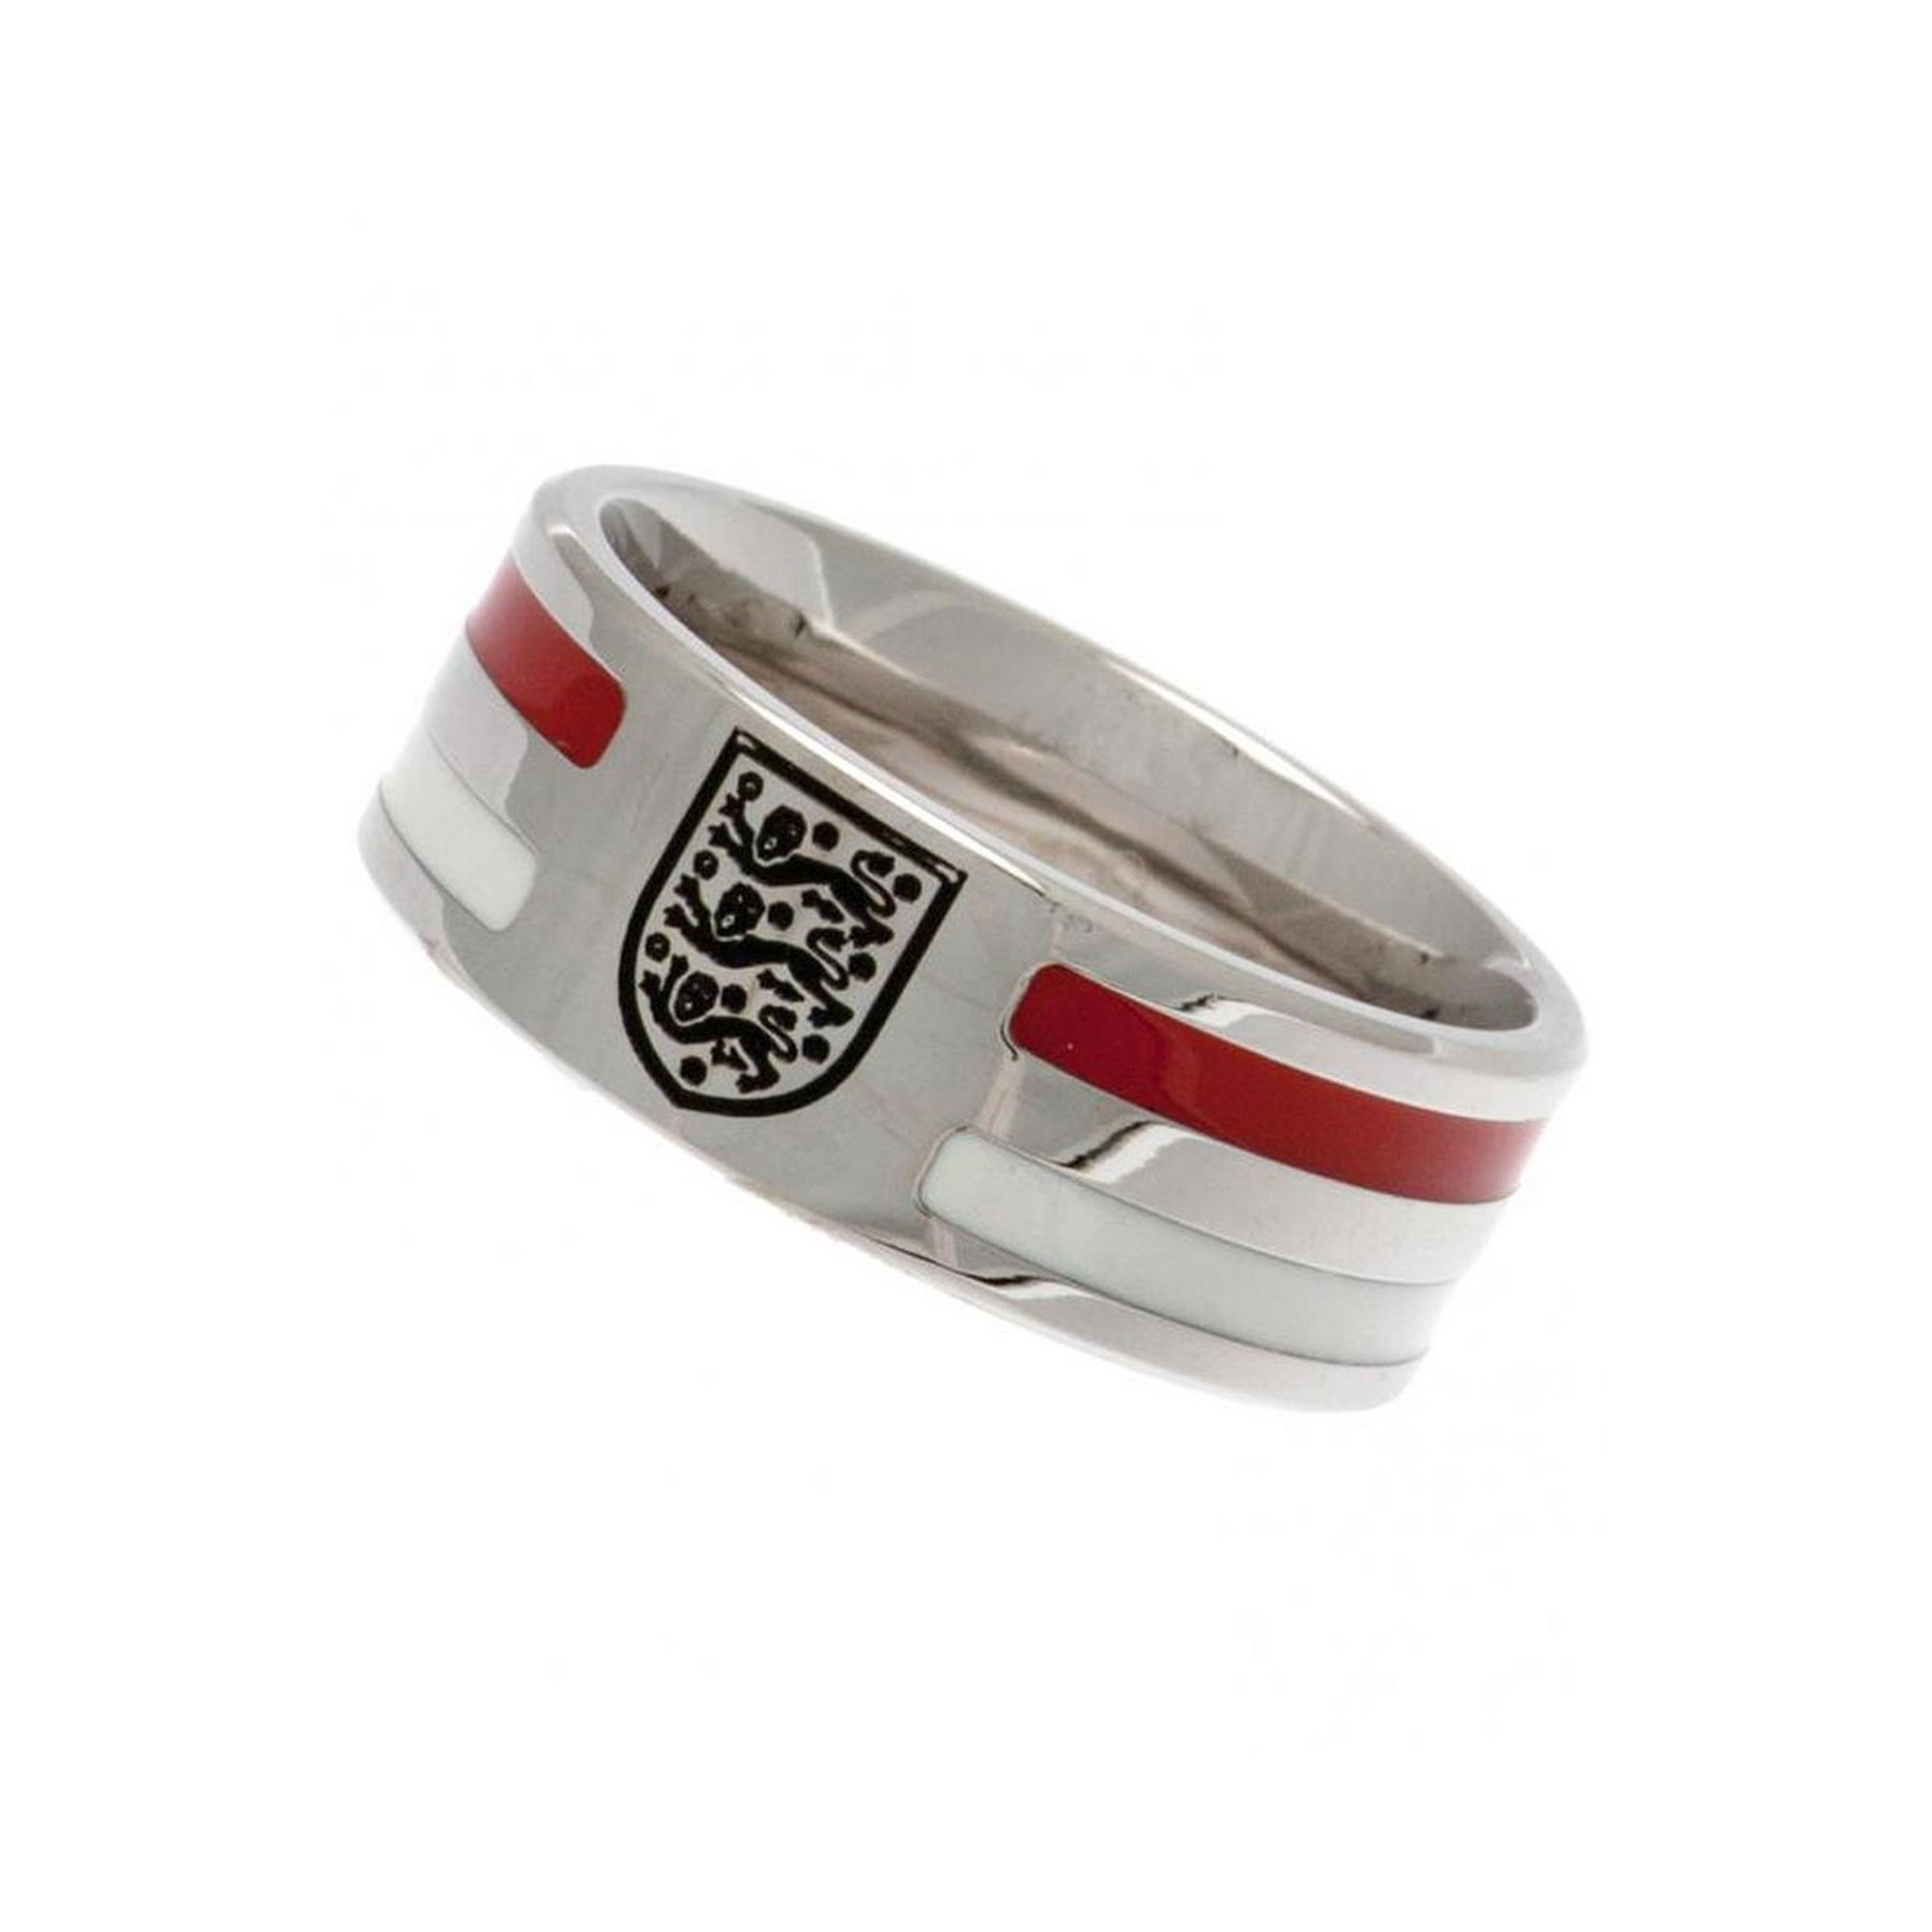 Image of England FC Stainless Steel Striped Crest Ring